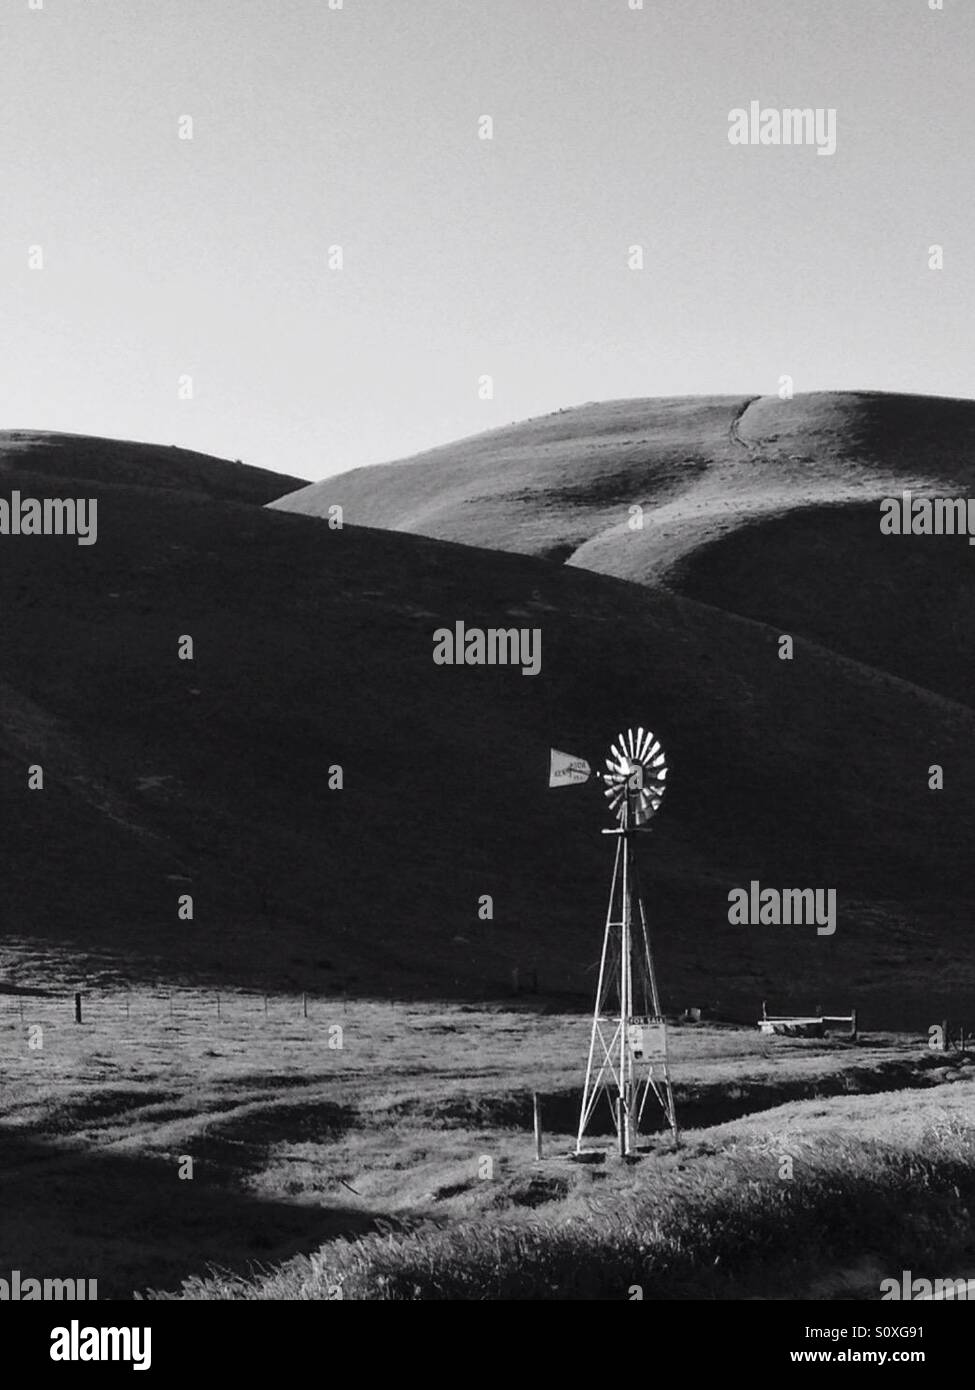 Windmill in hilly ranch country, in black and white - Stock Image